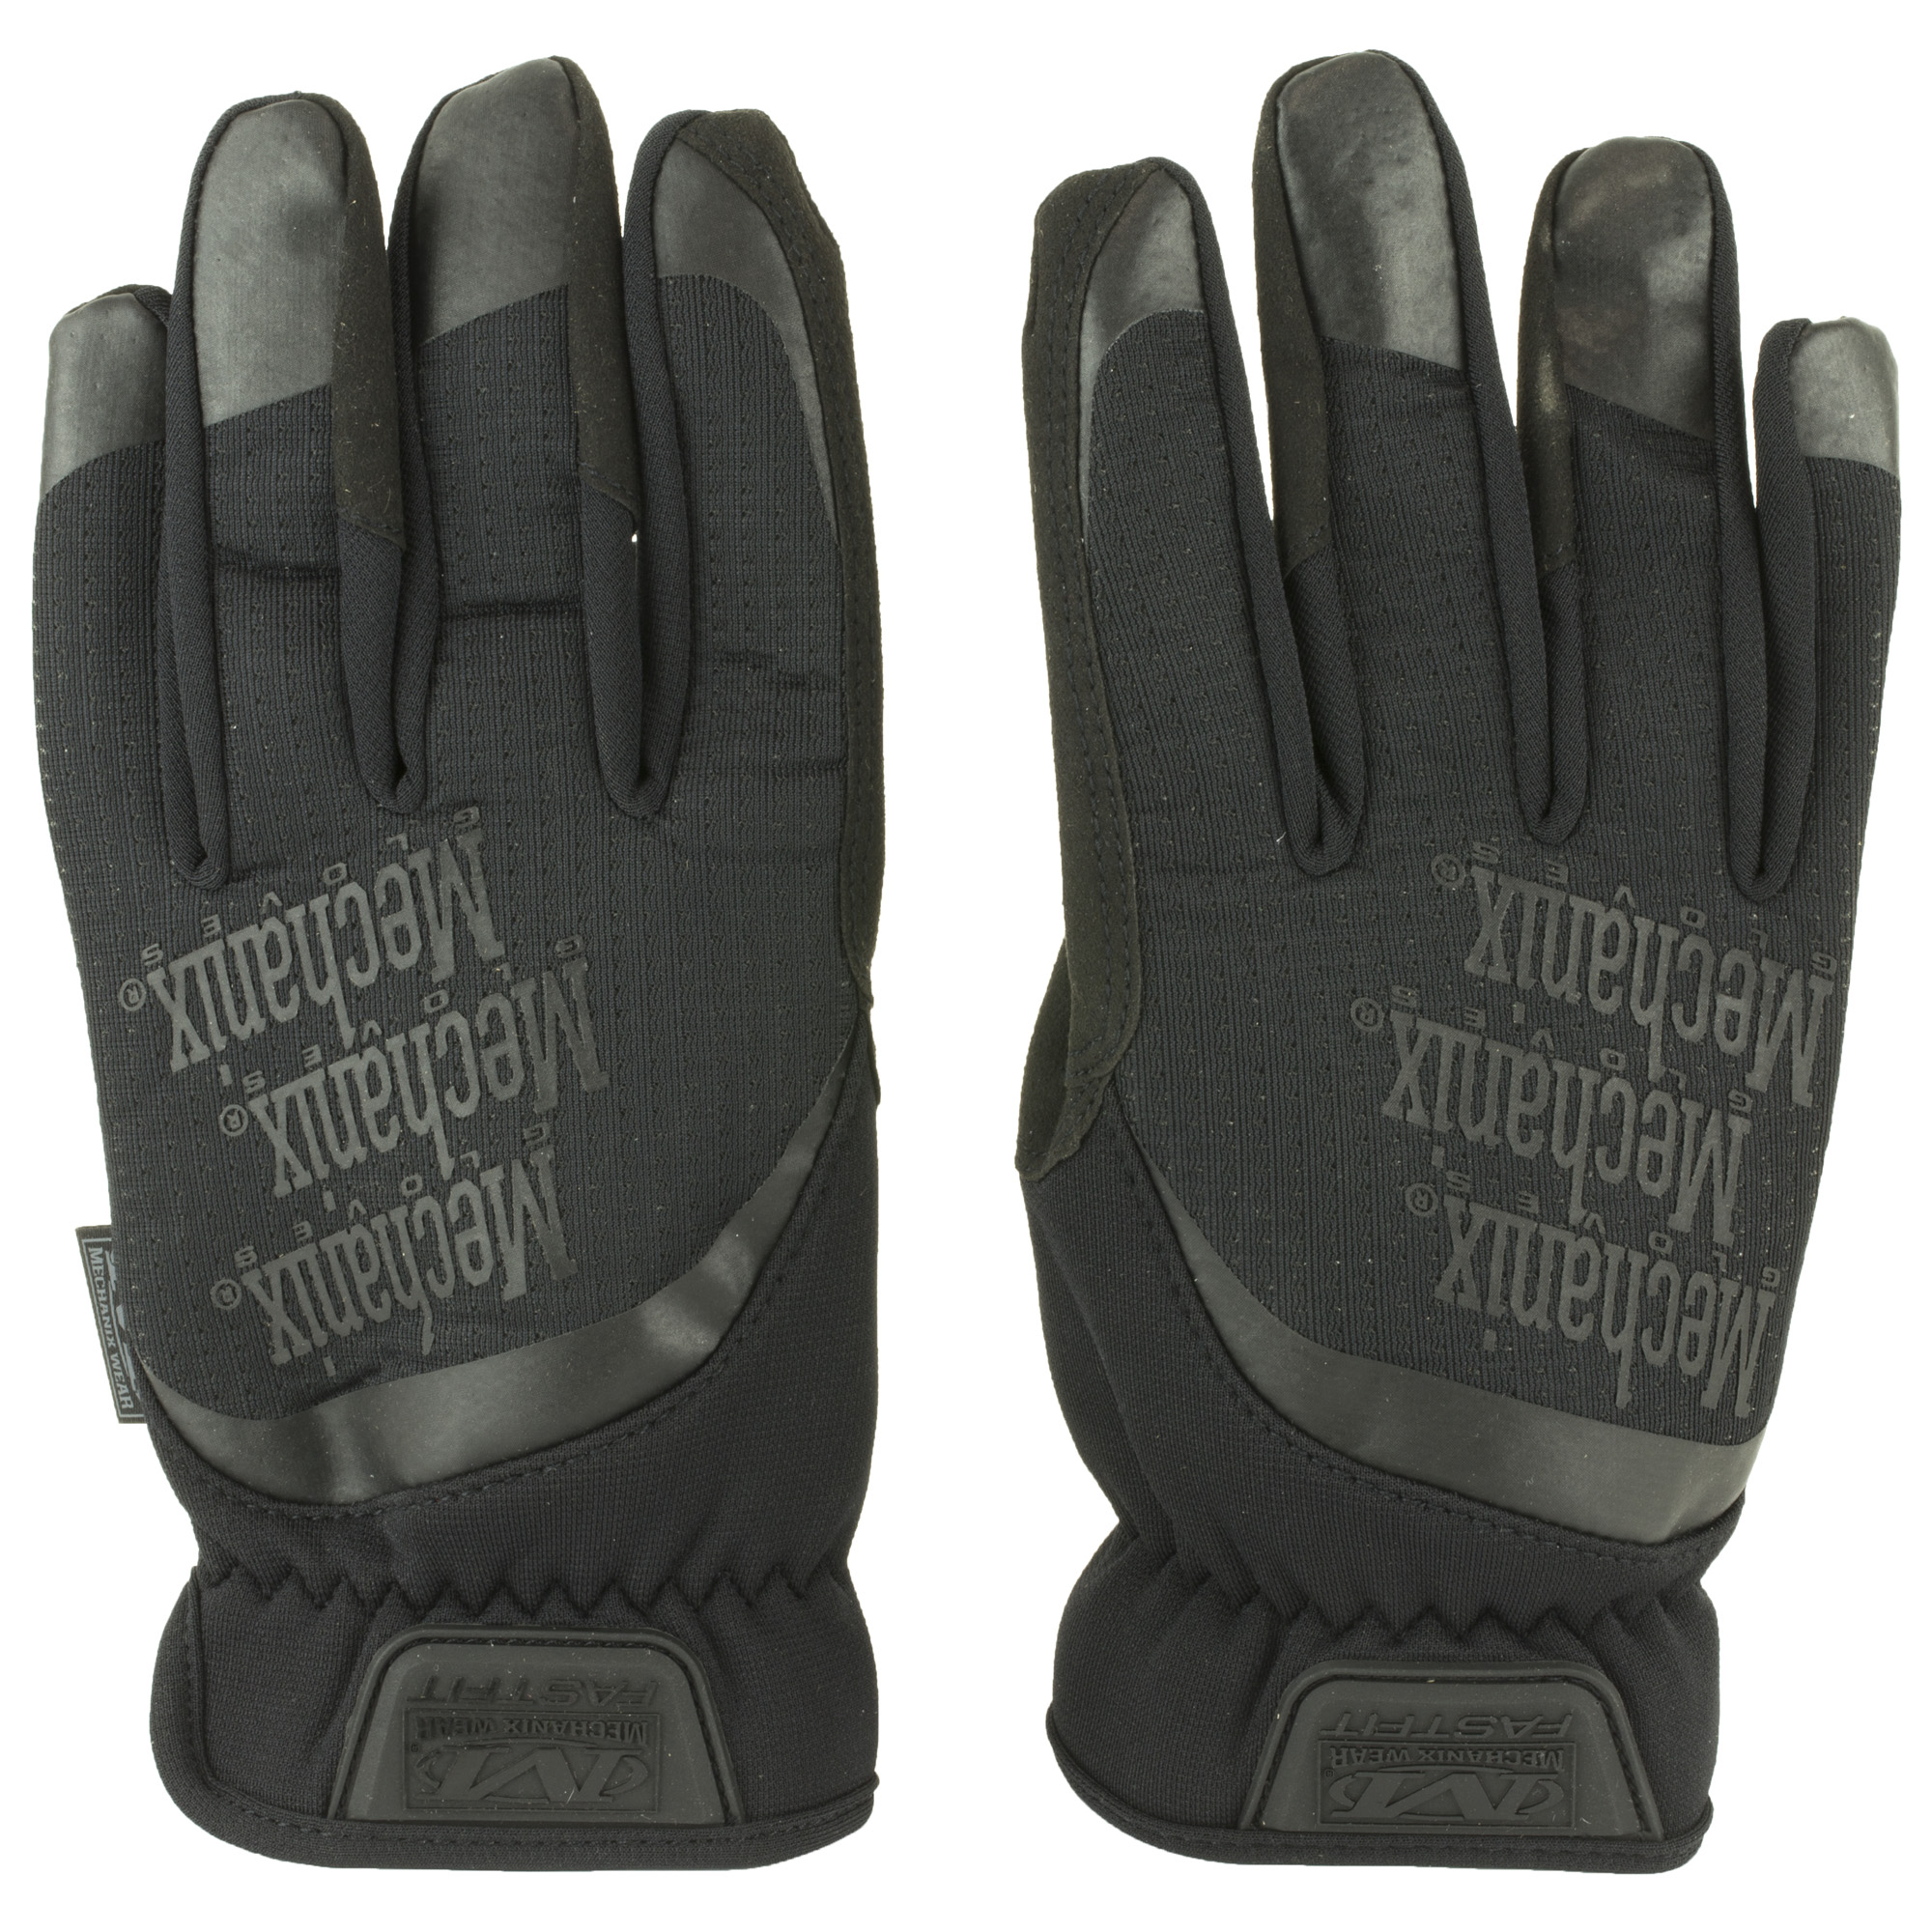 Mechanix Wear Fastfit Covert Lg